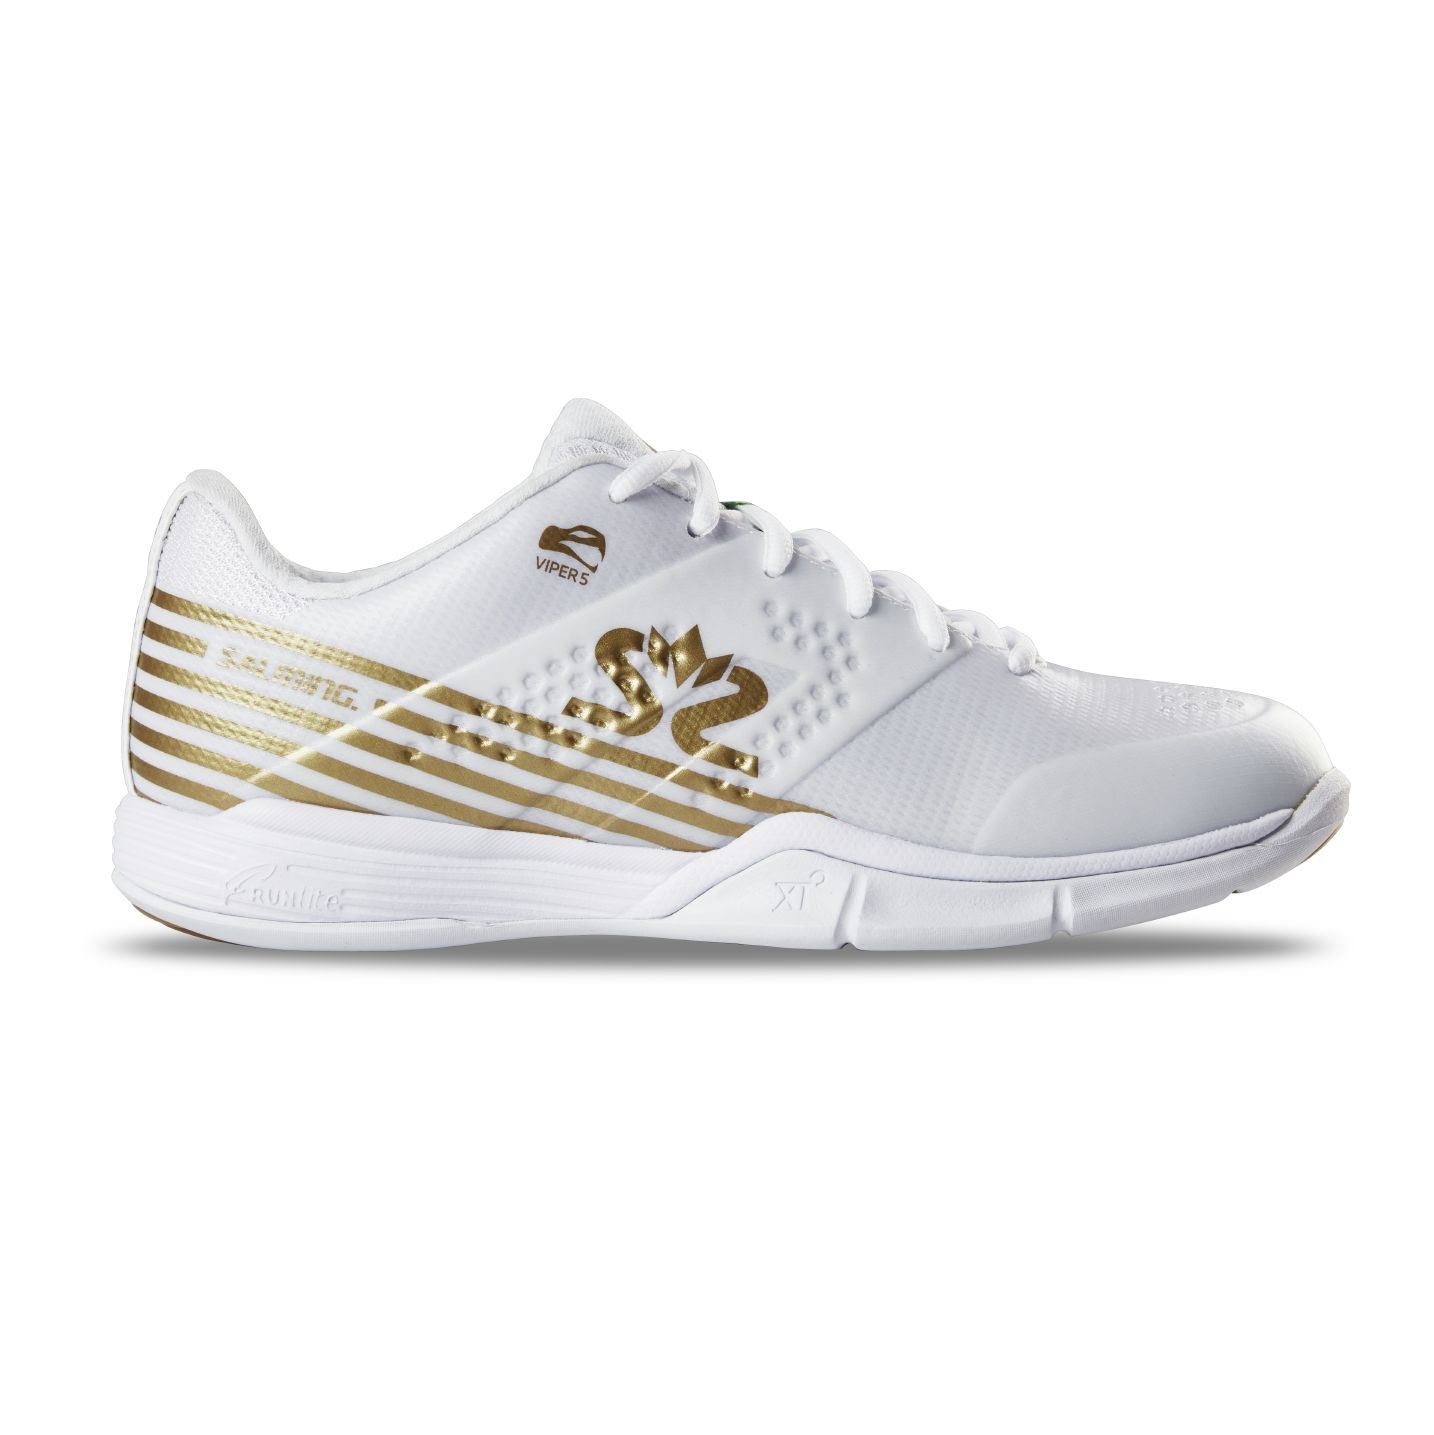 Salming Viper 5 Shoe Women White/Gold 6 UK - 39 1/3 EUR - 25 cm